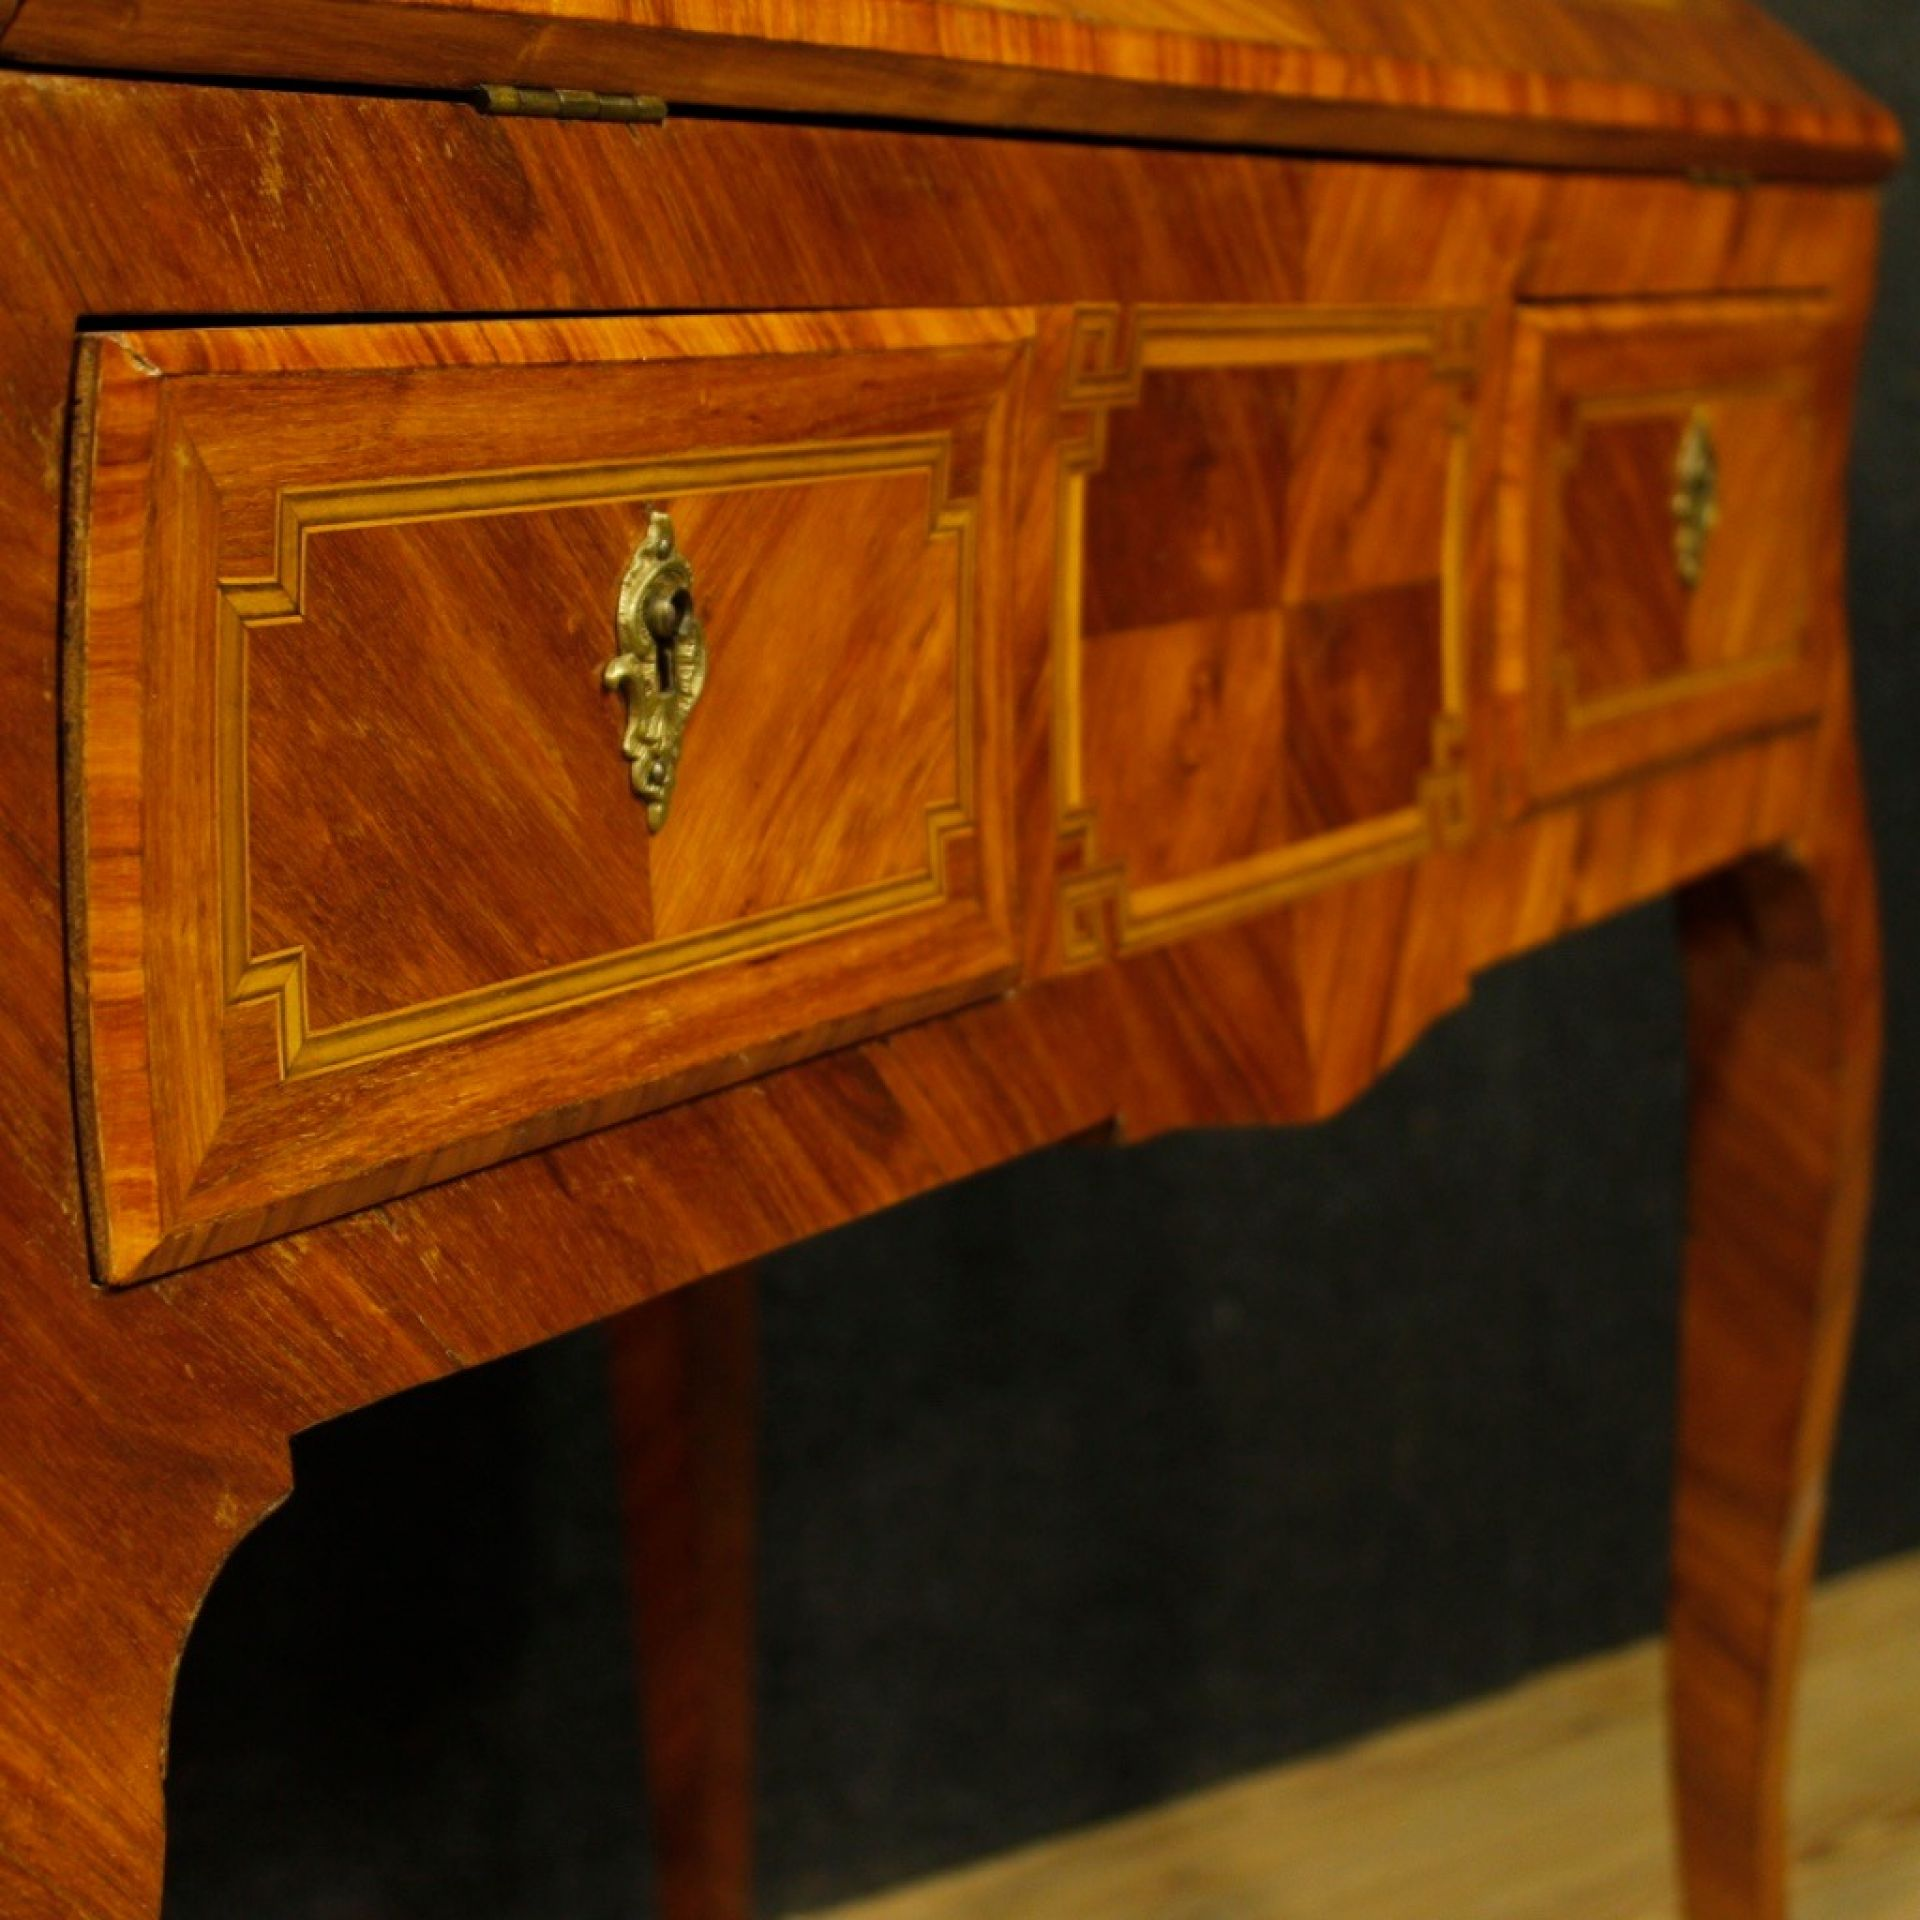 French Bureau In Inlaid Walnut, Rosewood, Maple, Tulipwood and Fruitwood